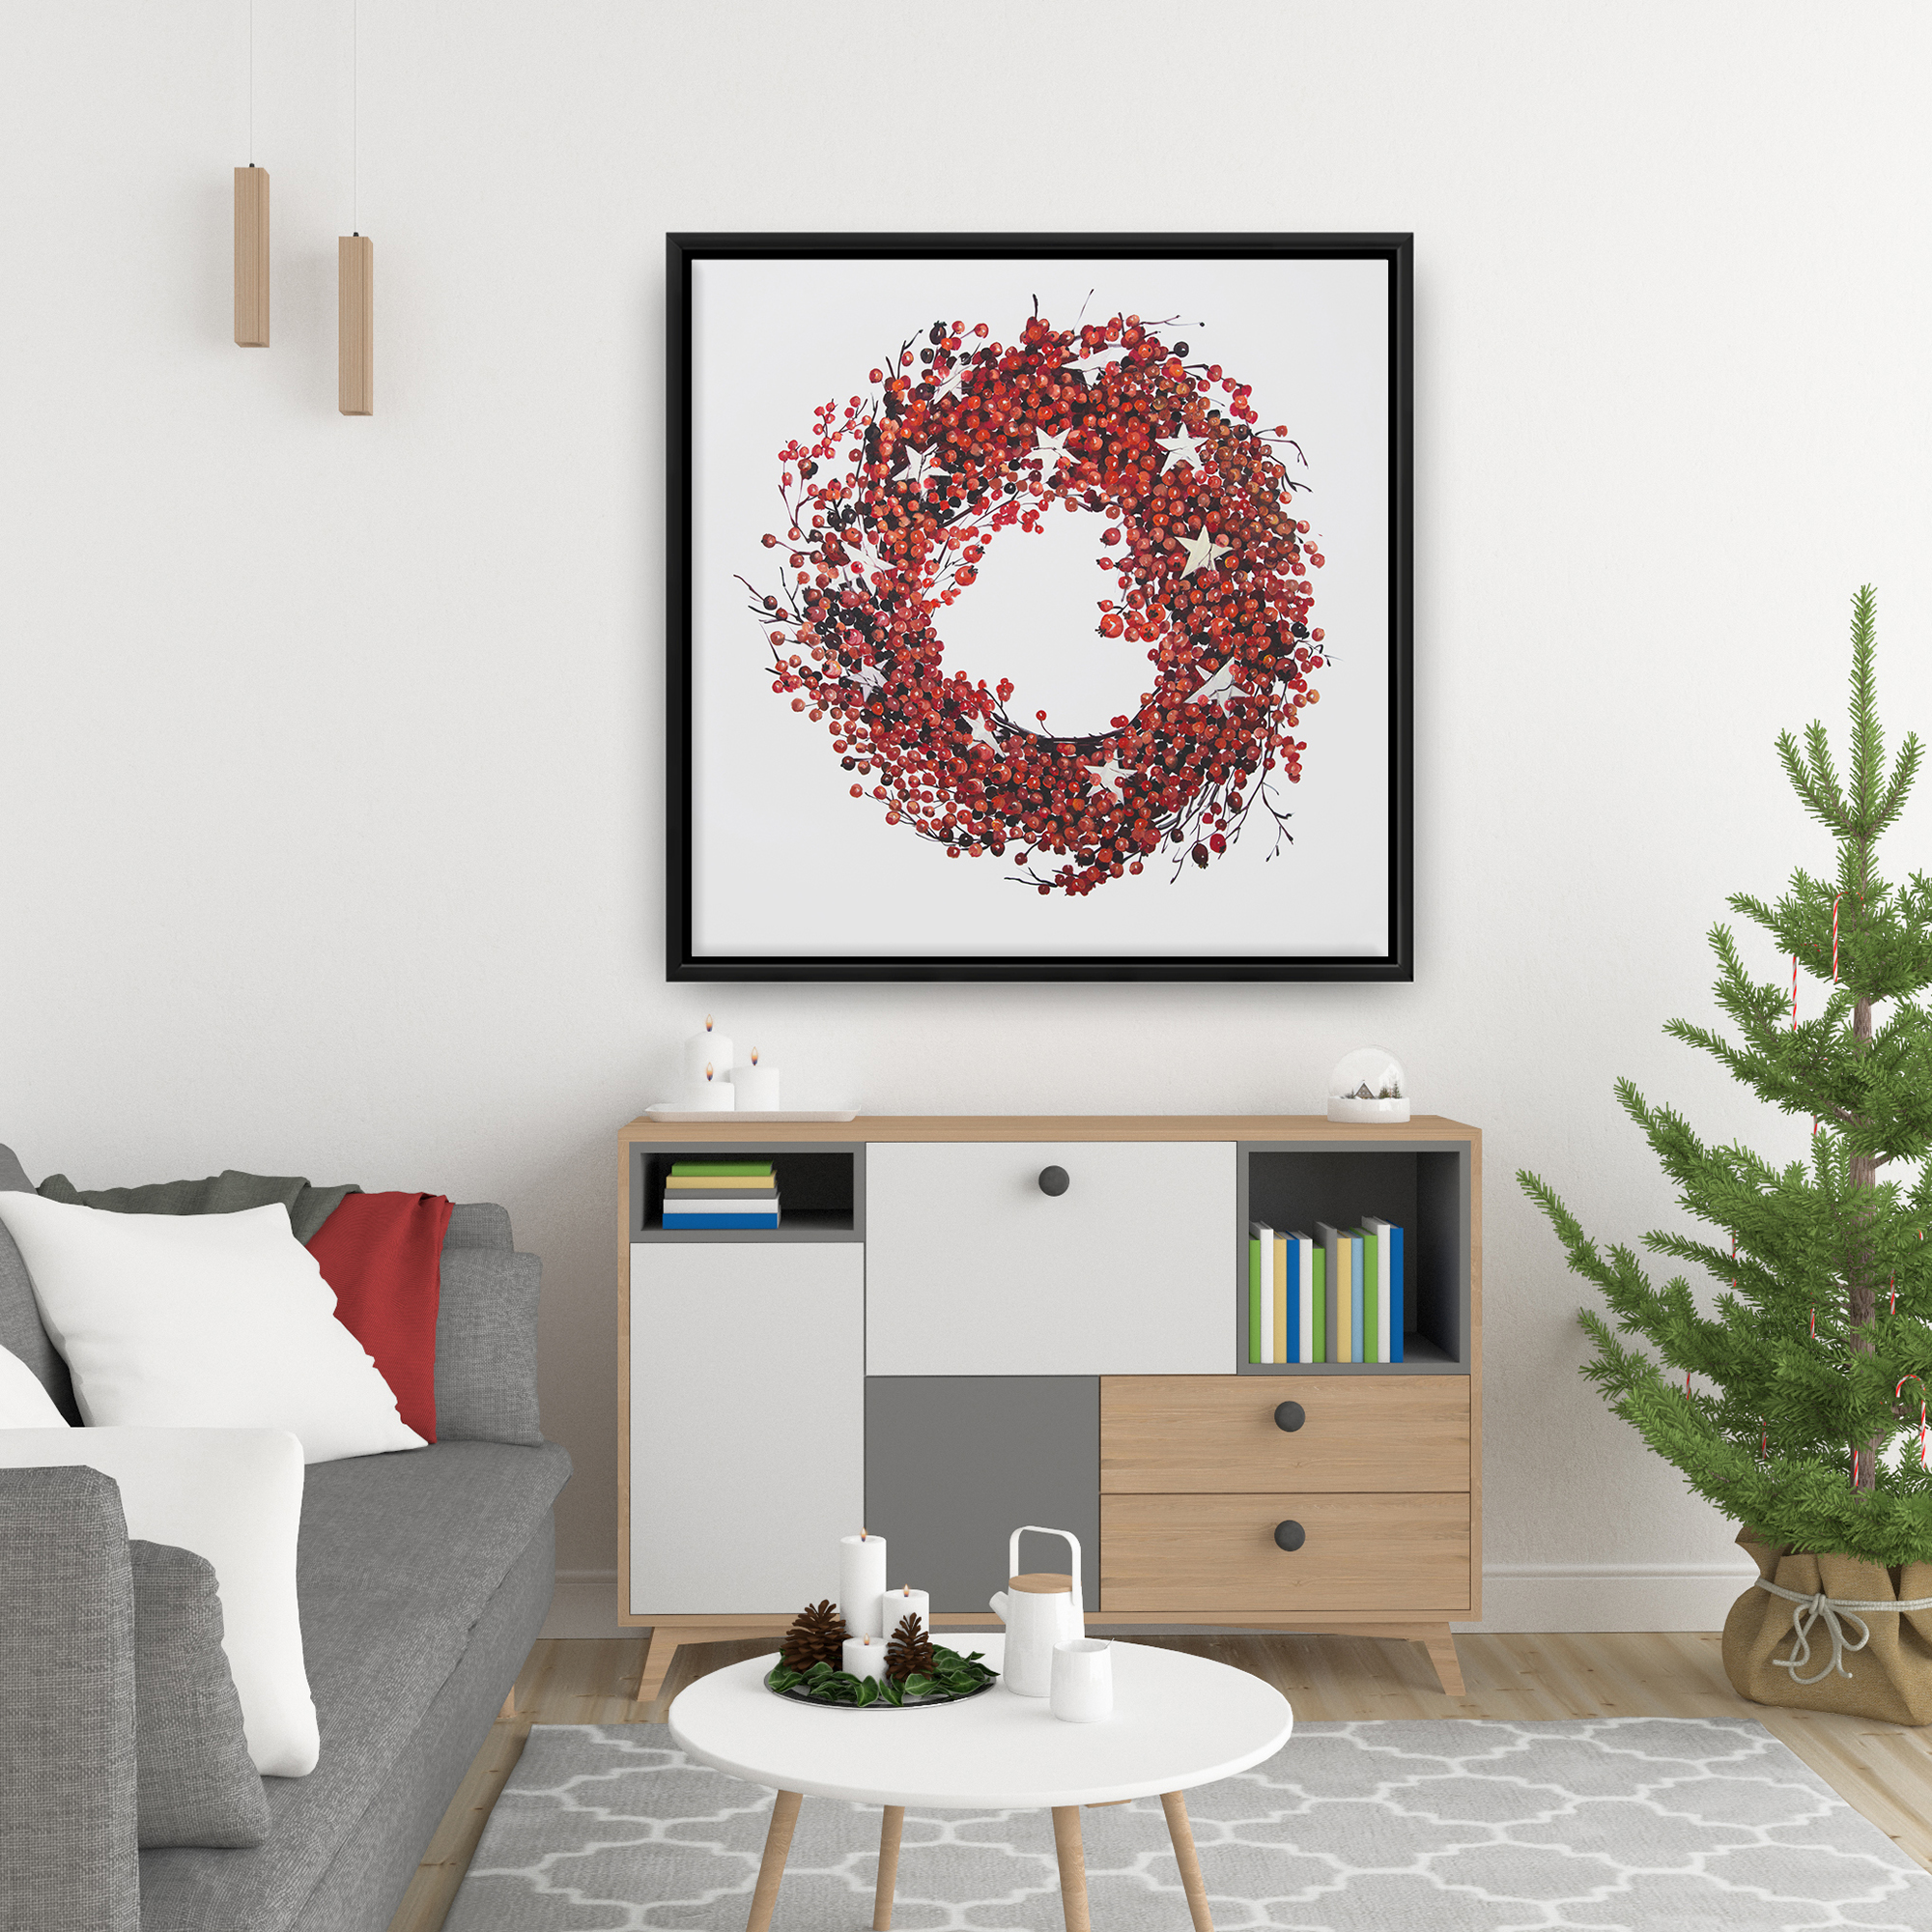 Framed 24 x 24 - Red berry wreath